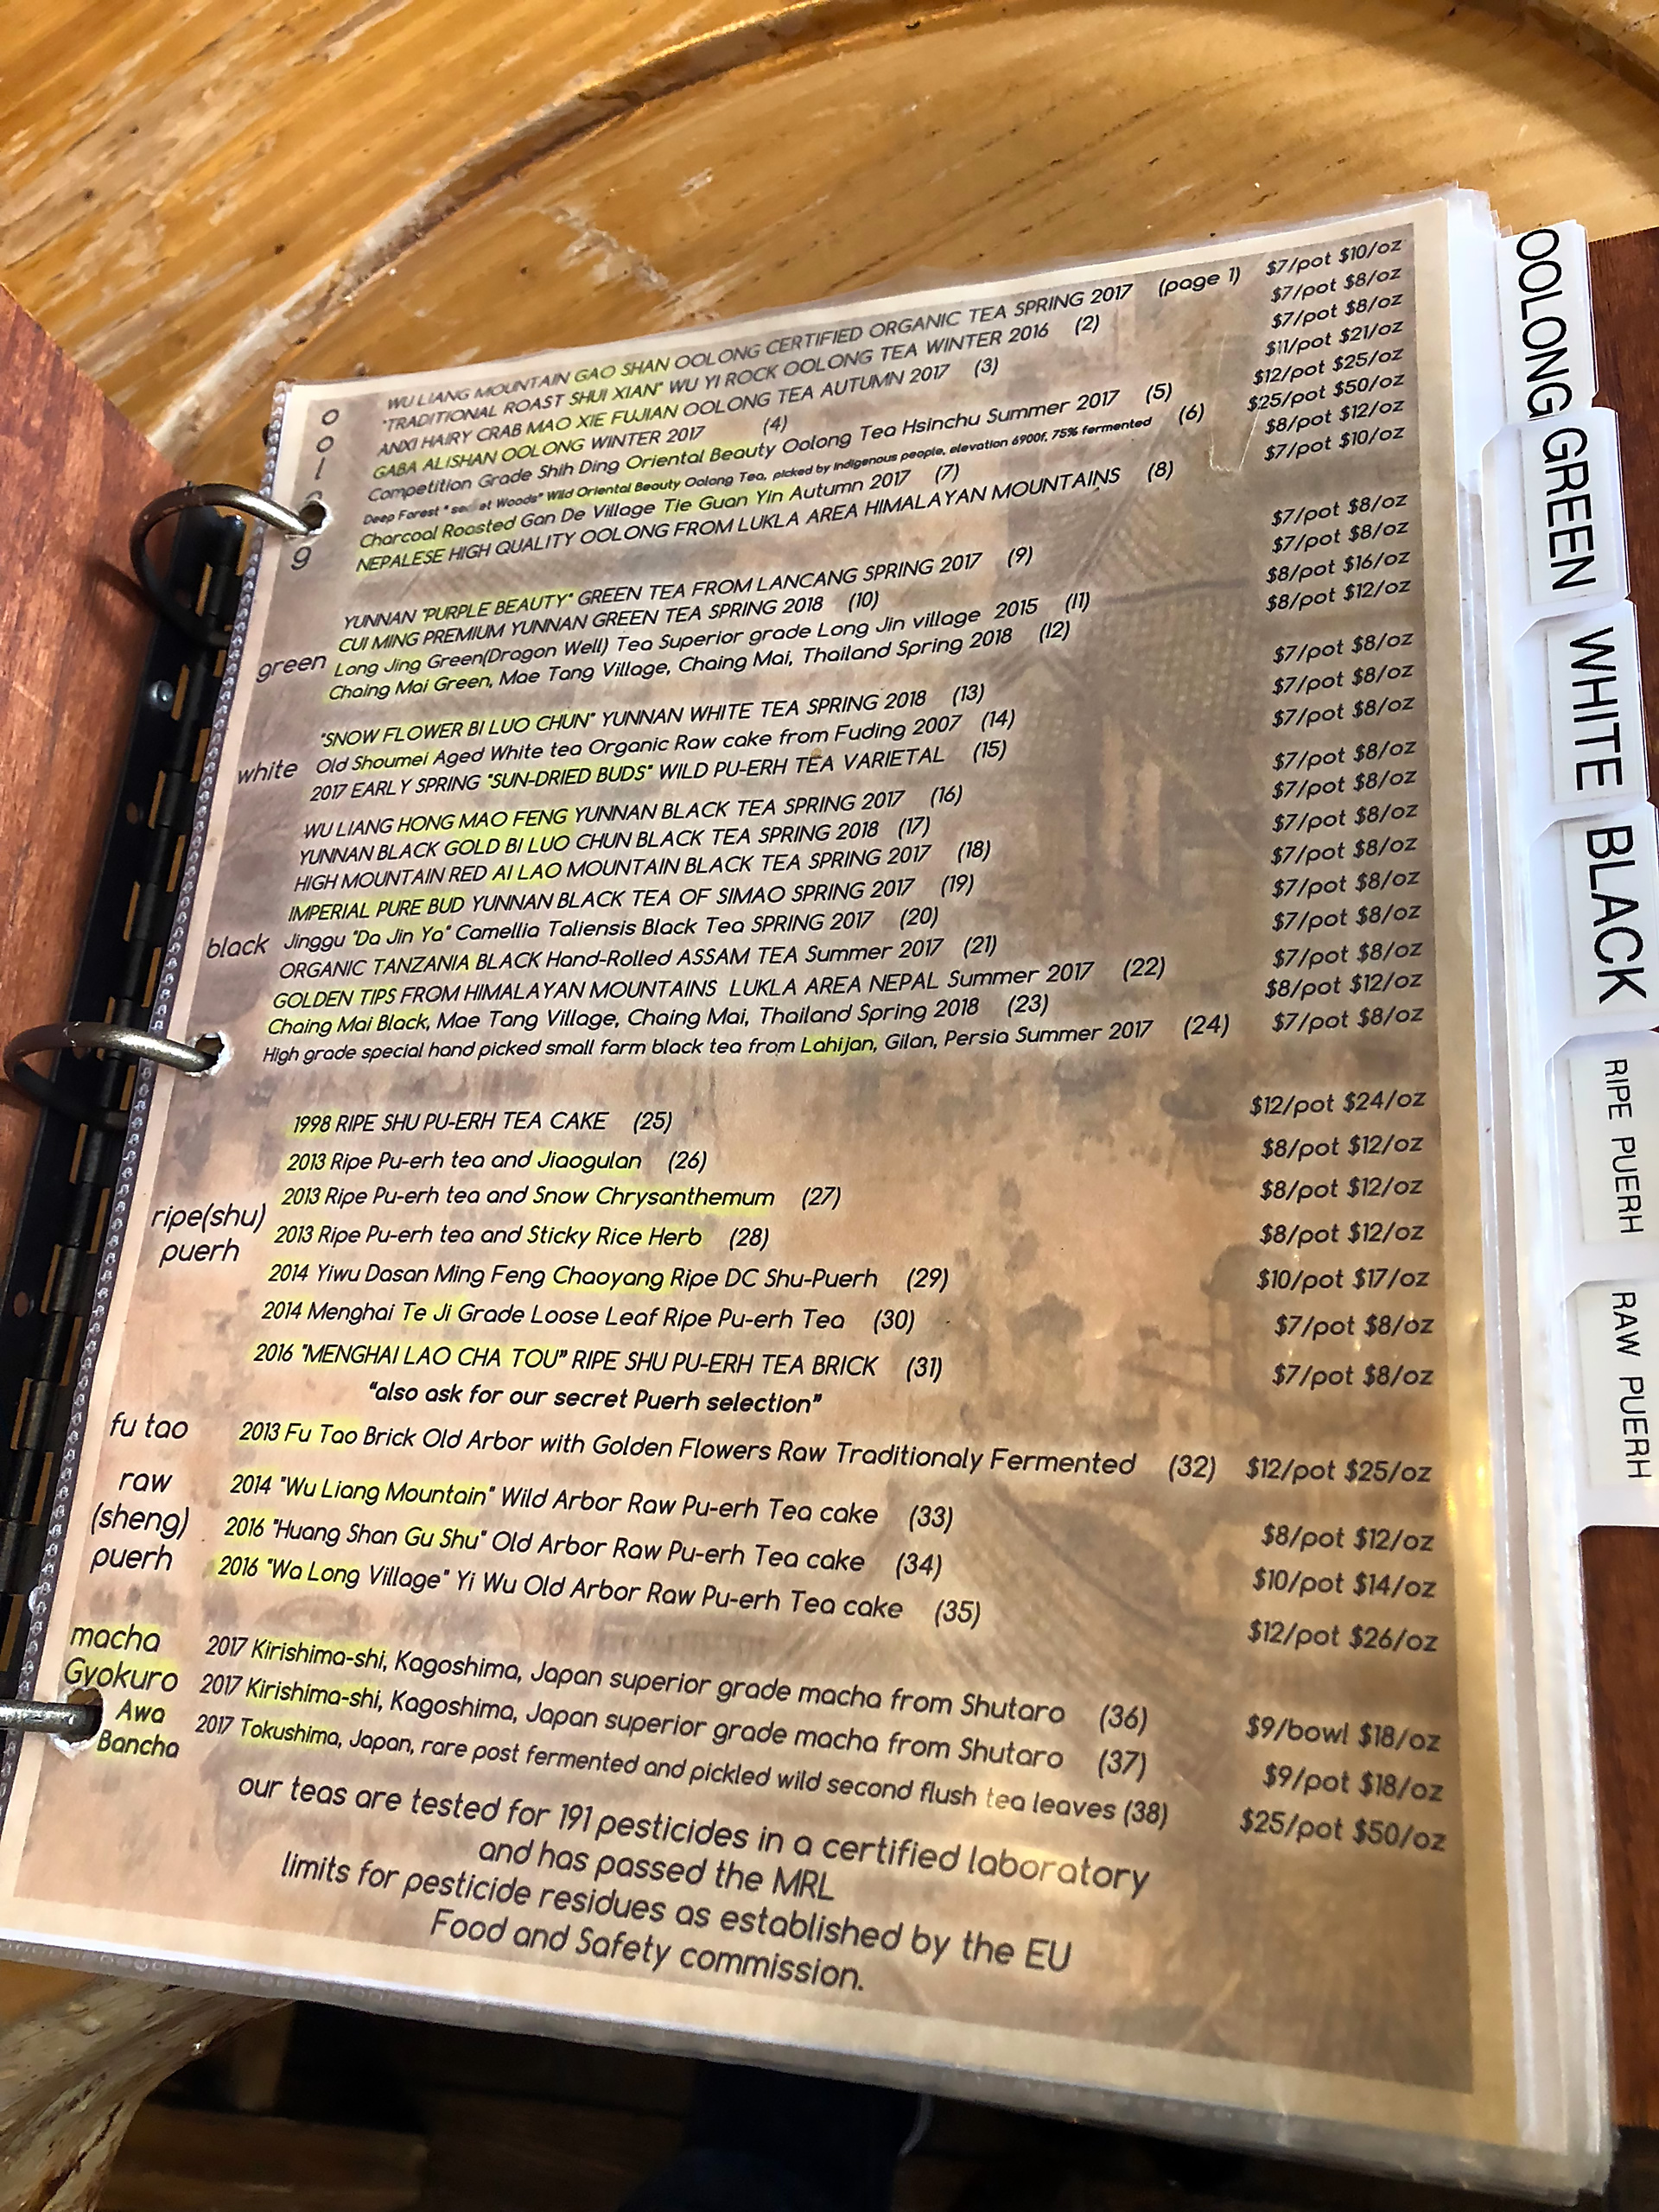 The extensive organic tea menu.